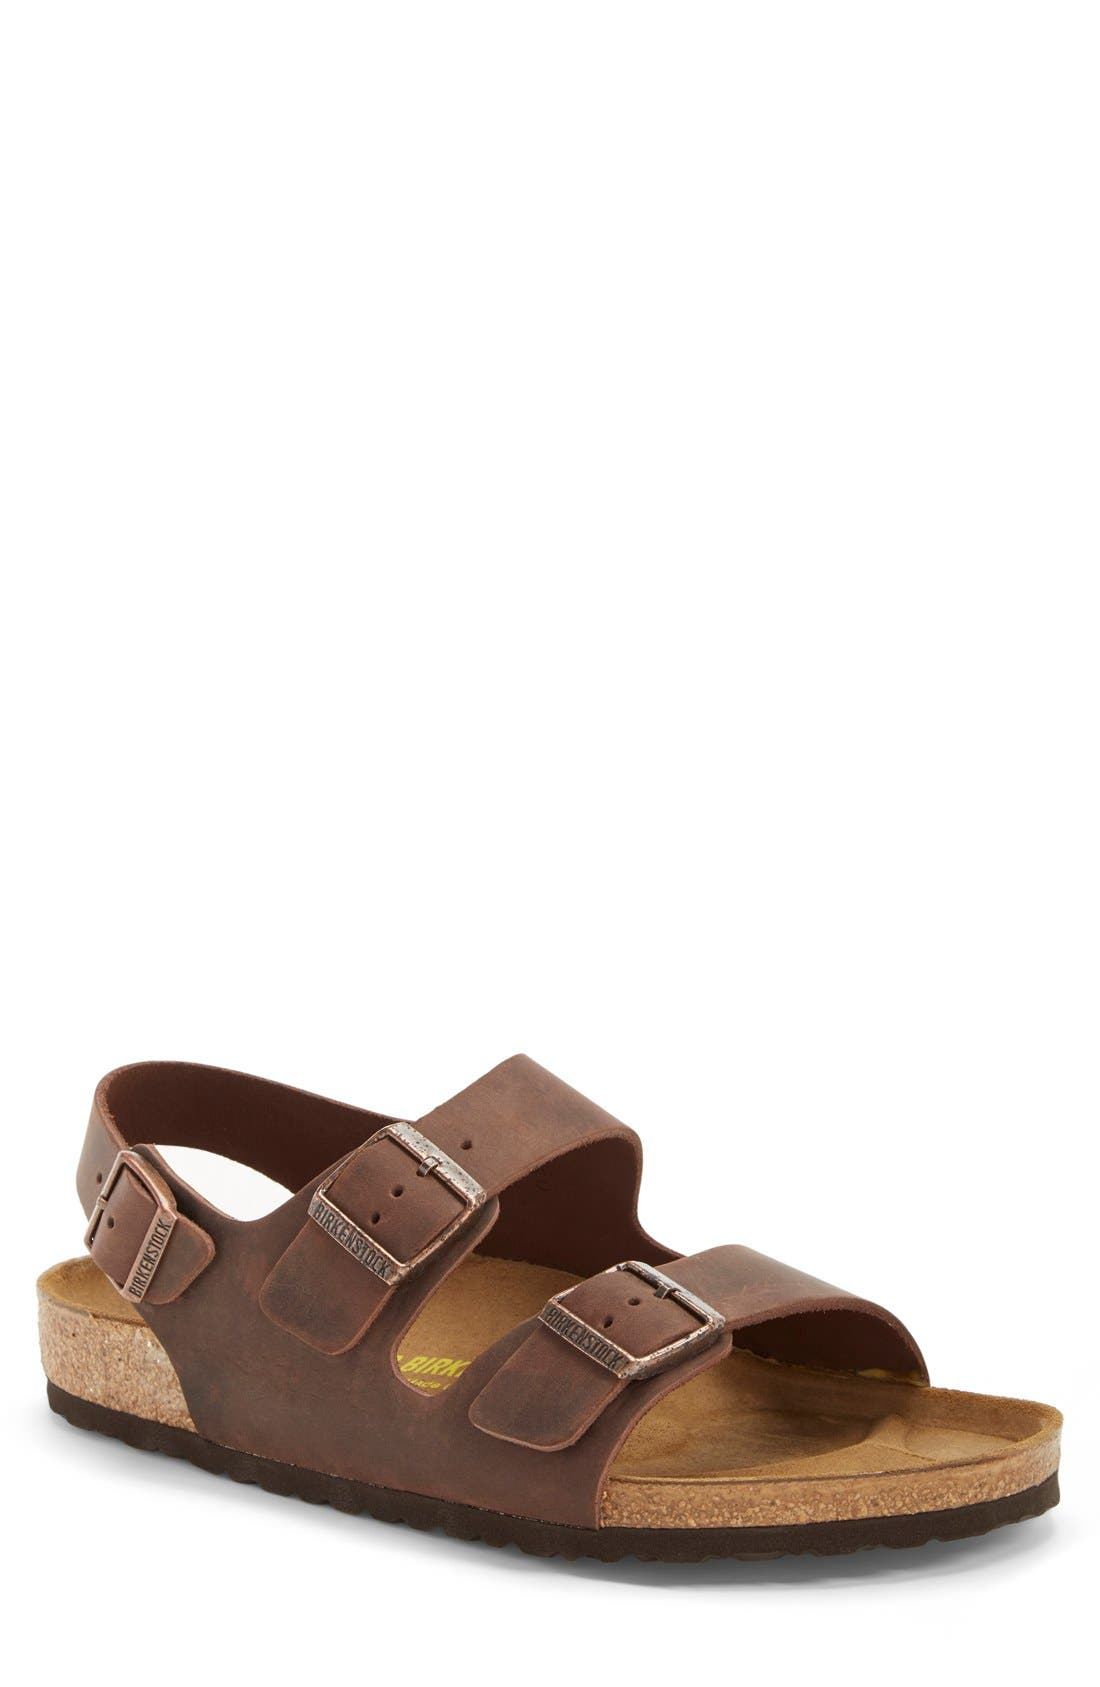 Alternate Image 1 Selected - Birkenstock 'Milano' Sandal   (Men)